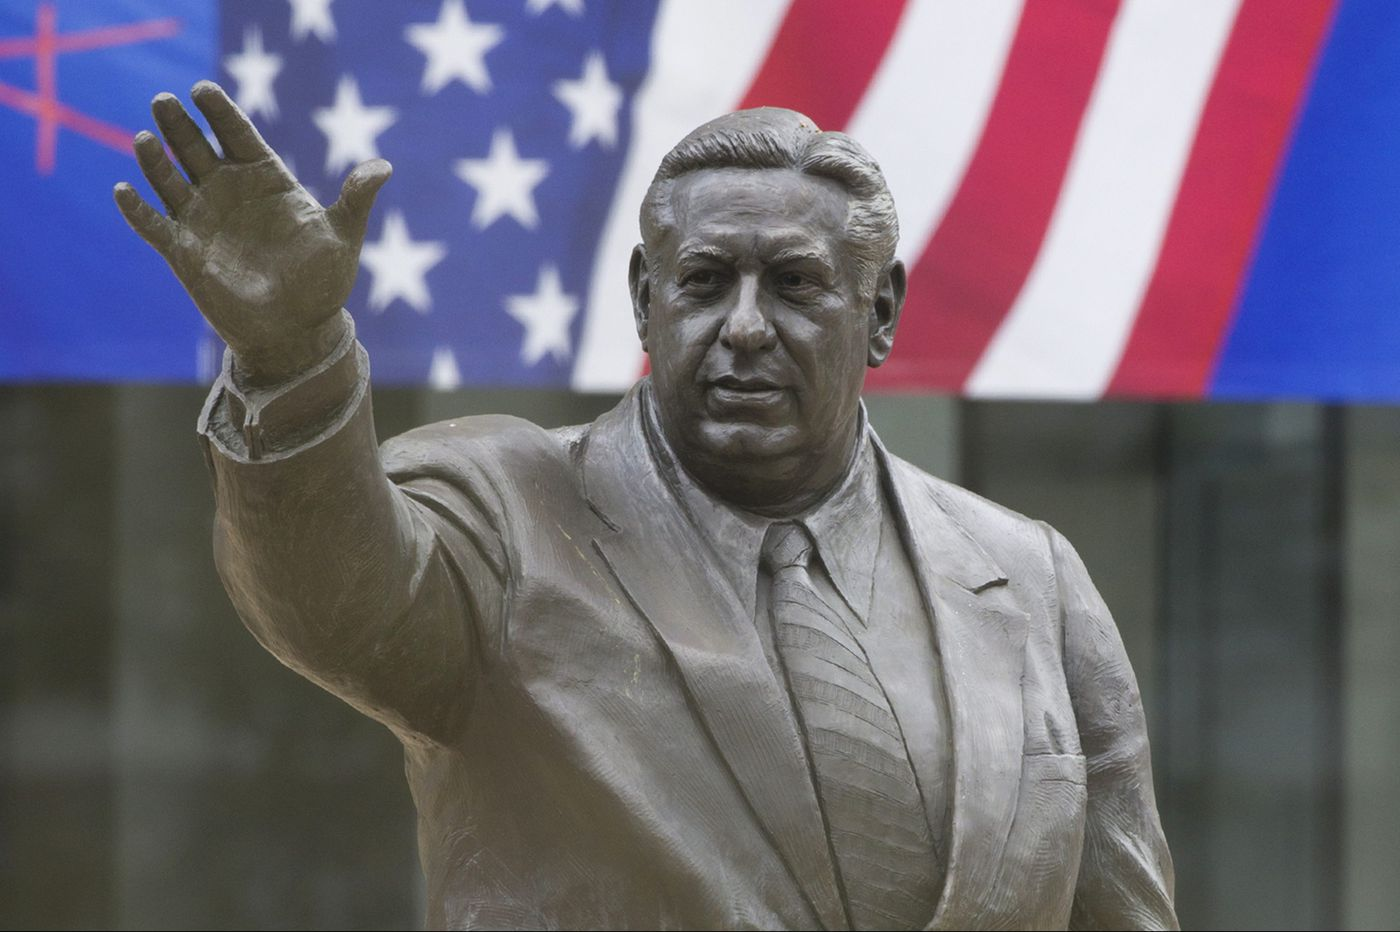 The politics behind the Frank Rizzo statue reprieve | Stu Bykofsky